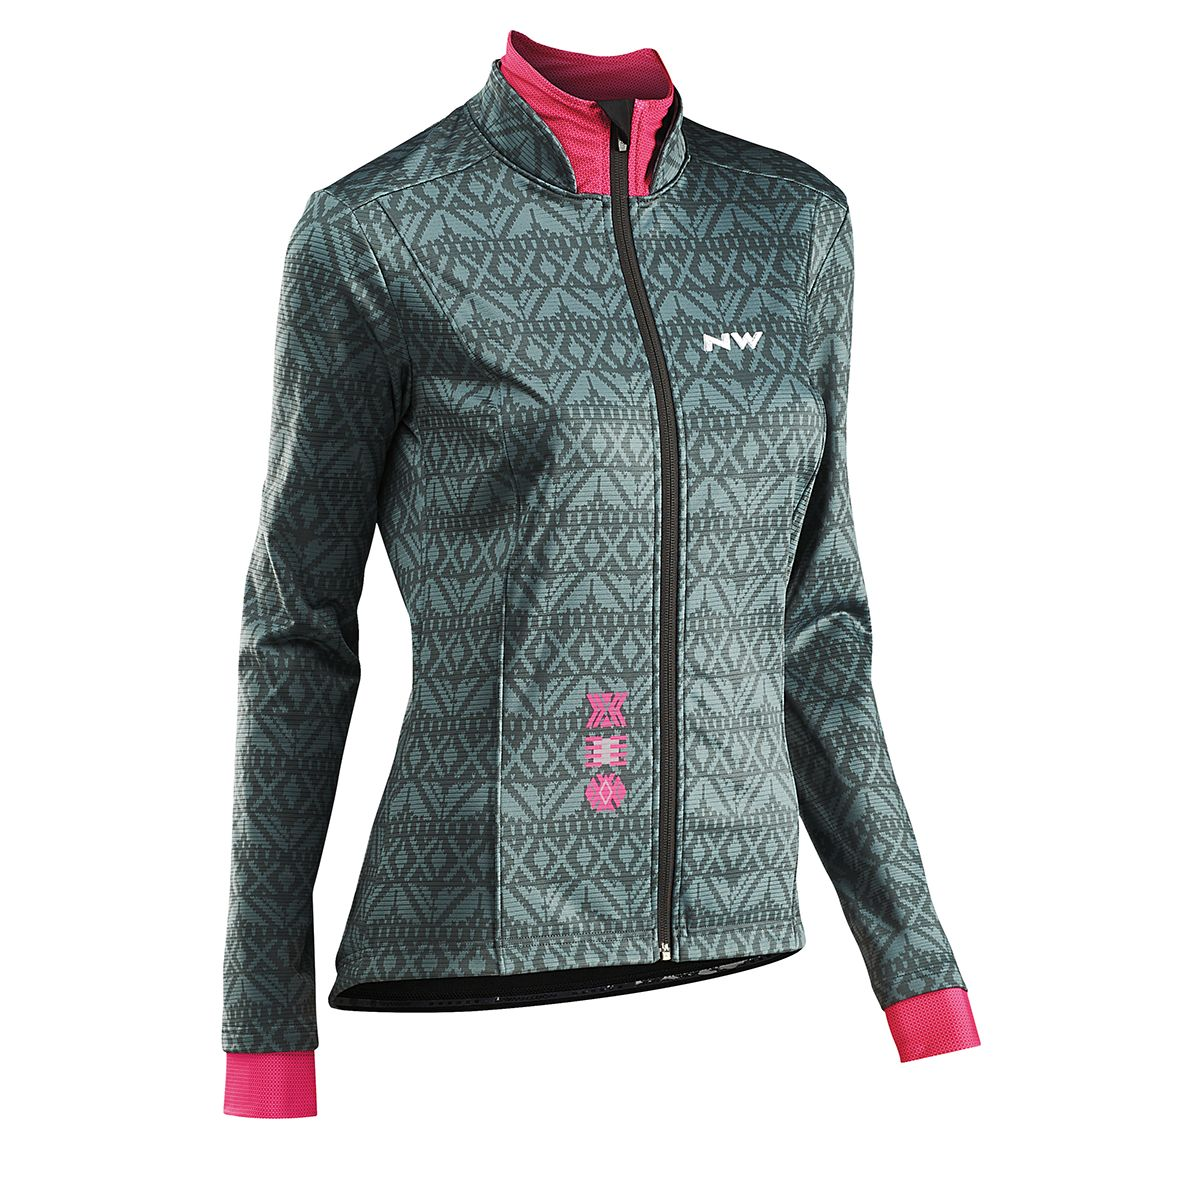 ALLURE JACKET TOTAL PROTECTION Damen Thermo Fahrradjacke